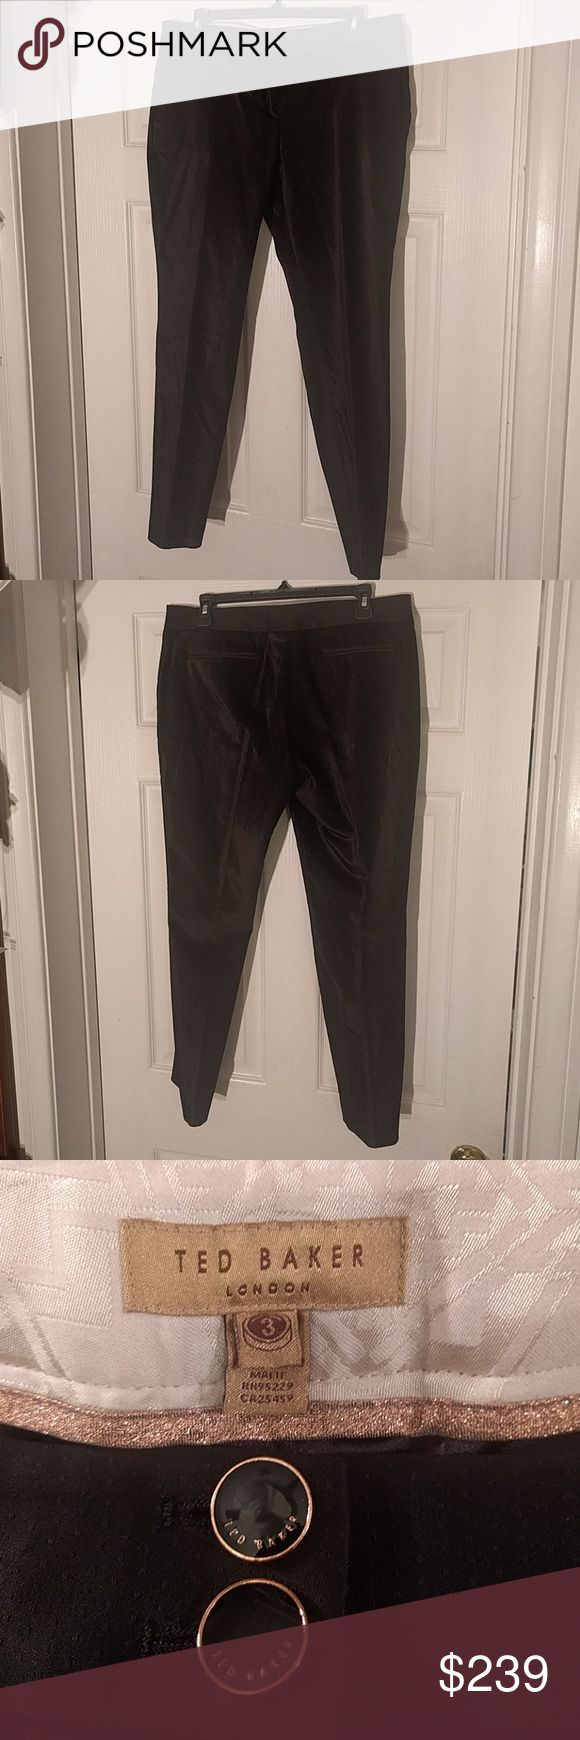 Ted Baker trousers Black cropped velvet trousers. Great condition, worn once. Ted Baker London Pants Ankle & Cropped